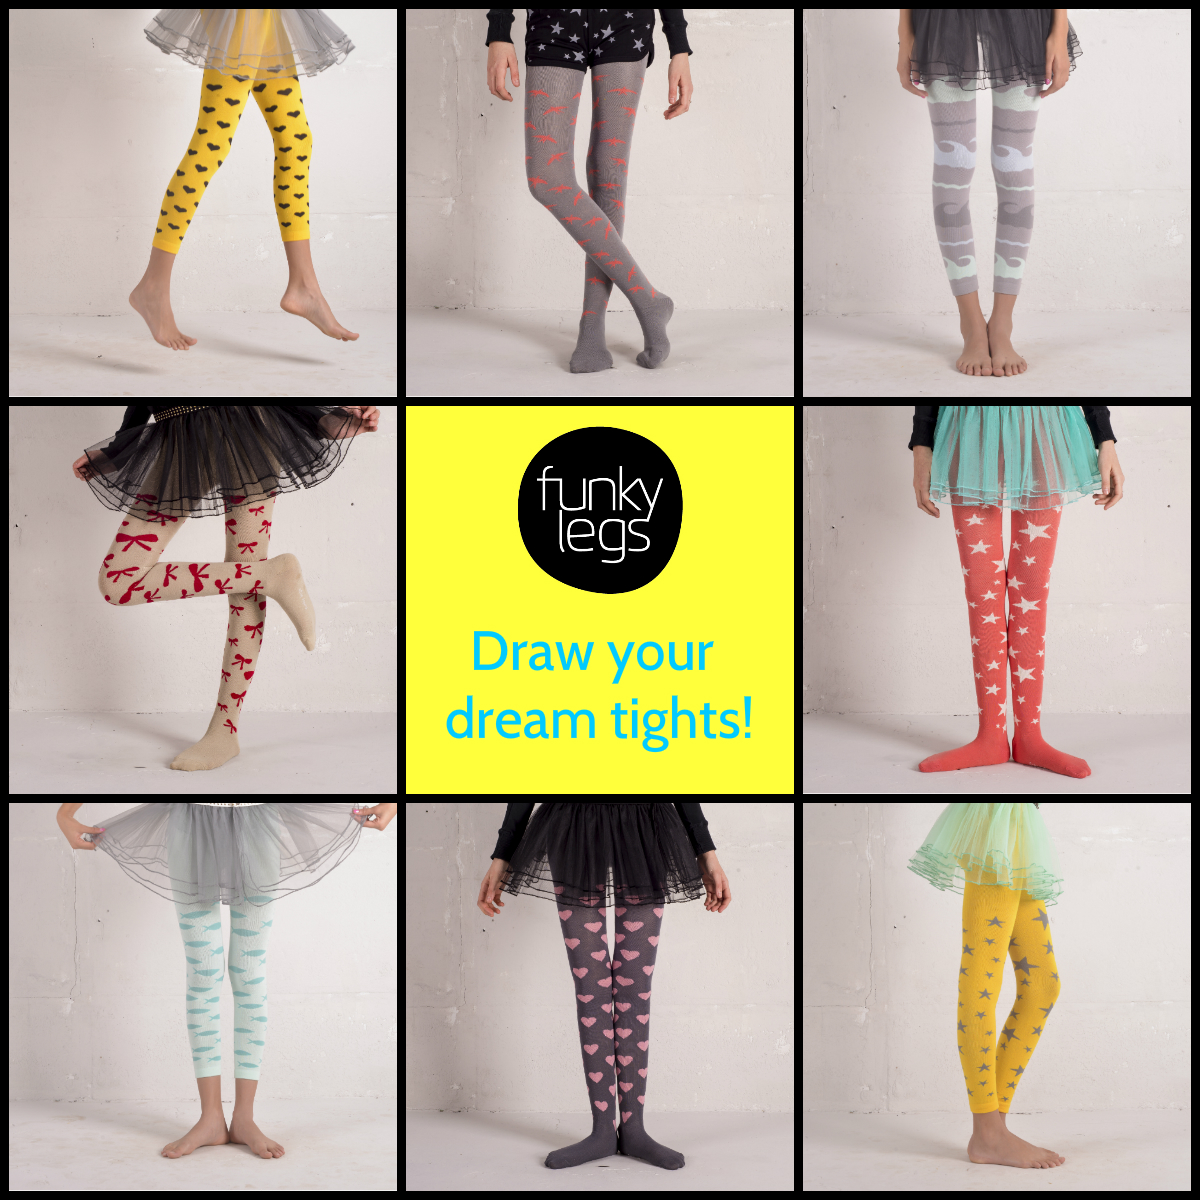 draw your dream tights